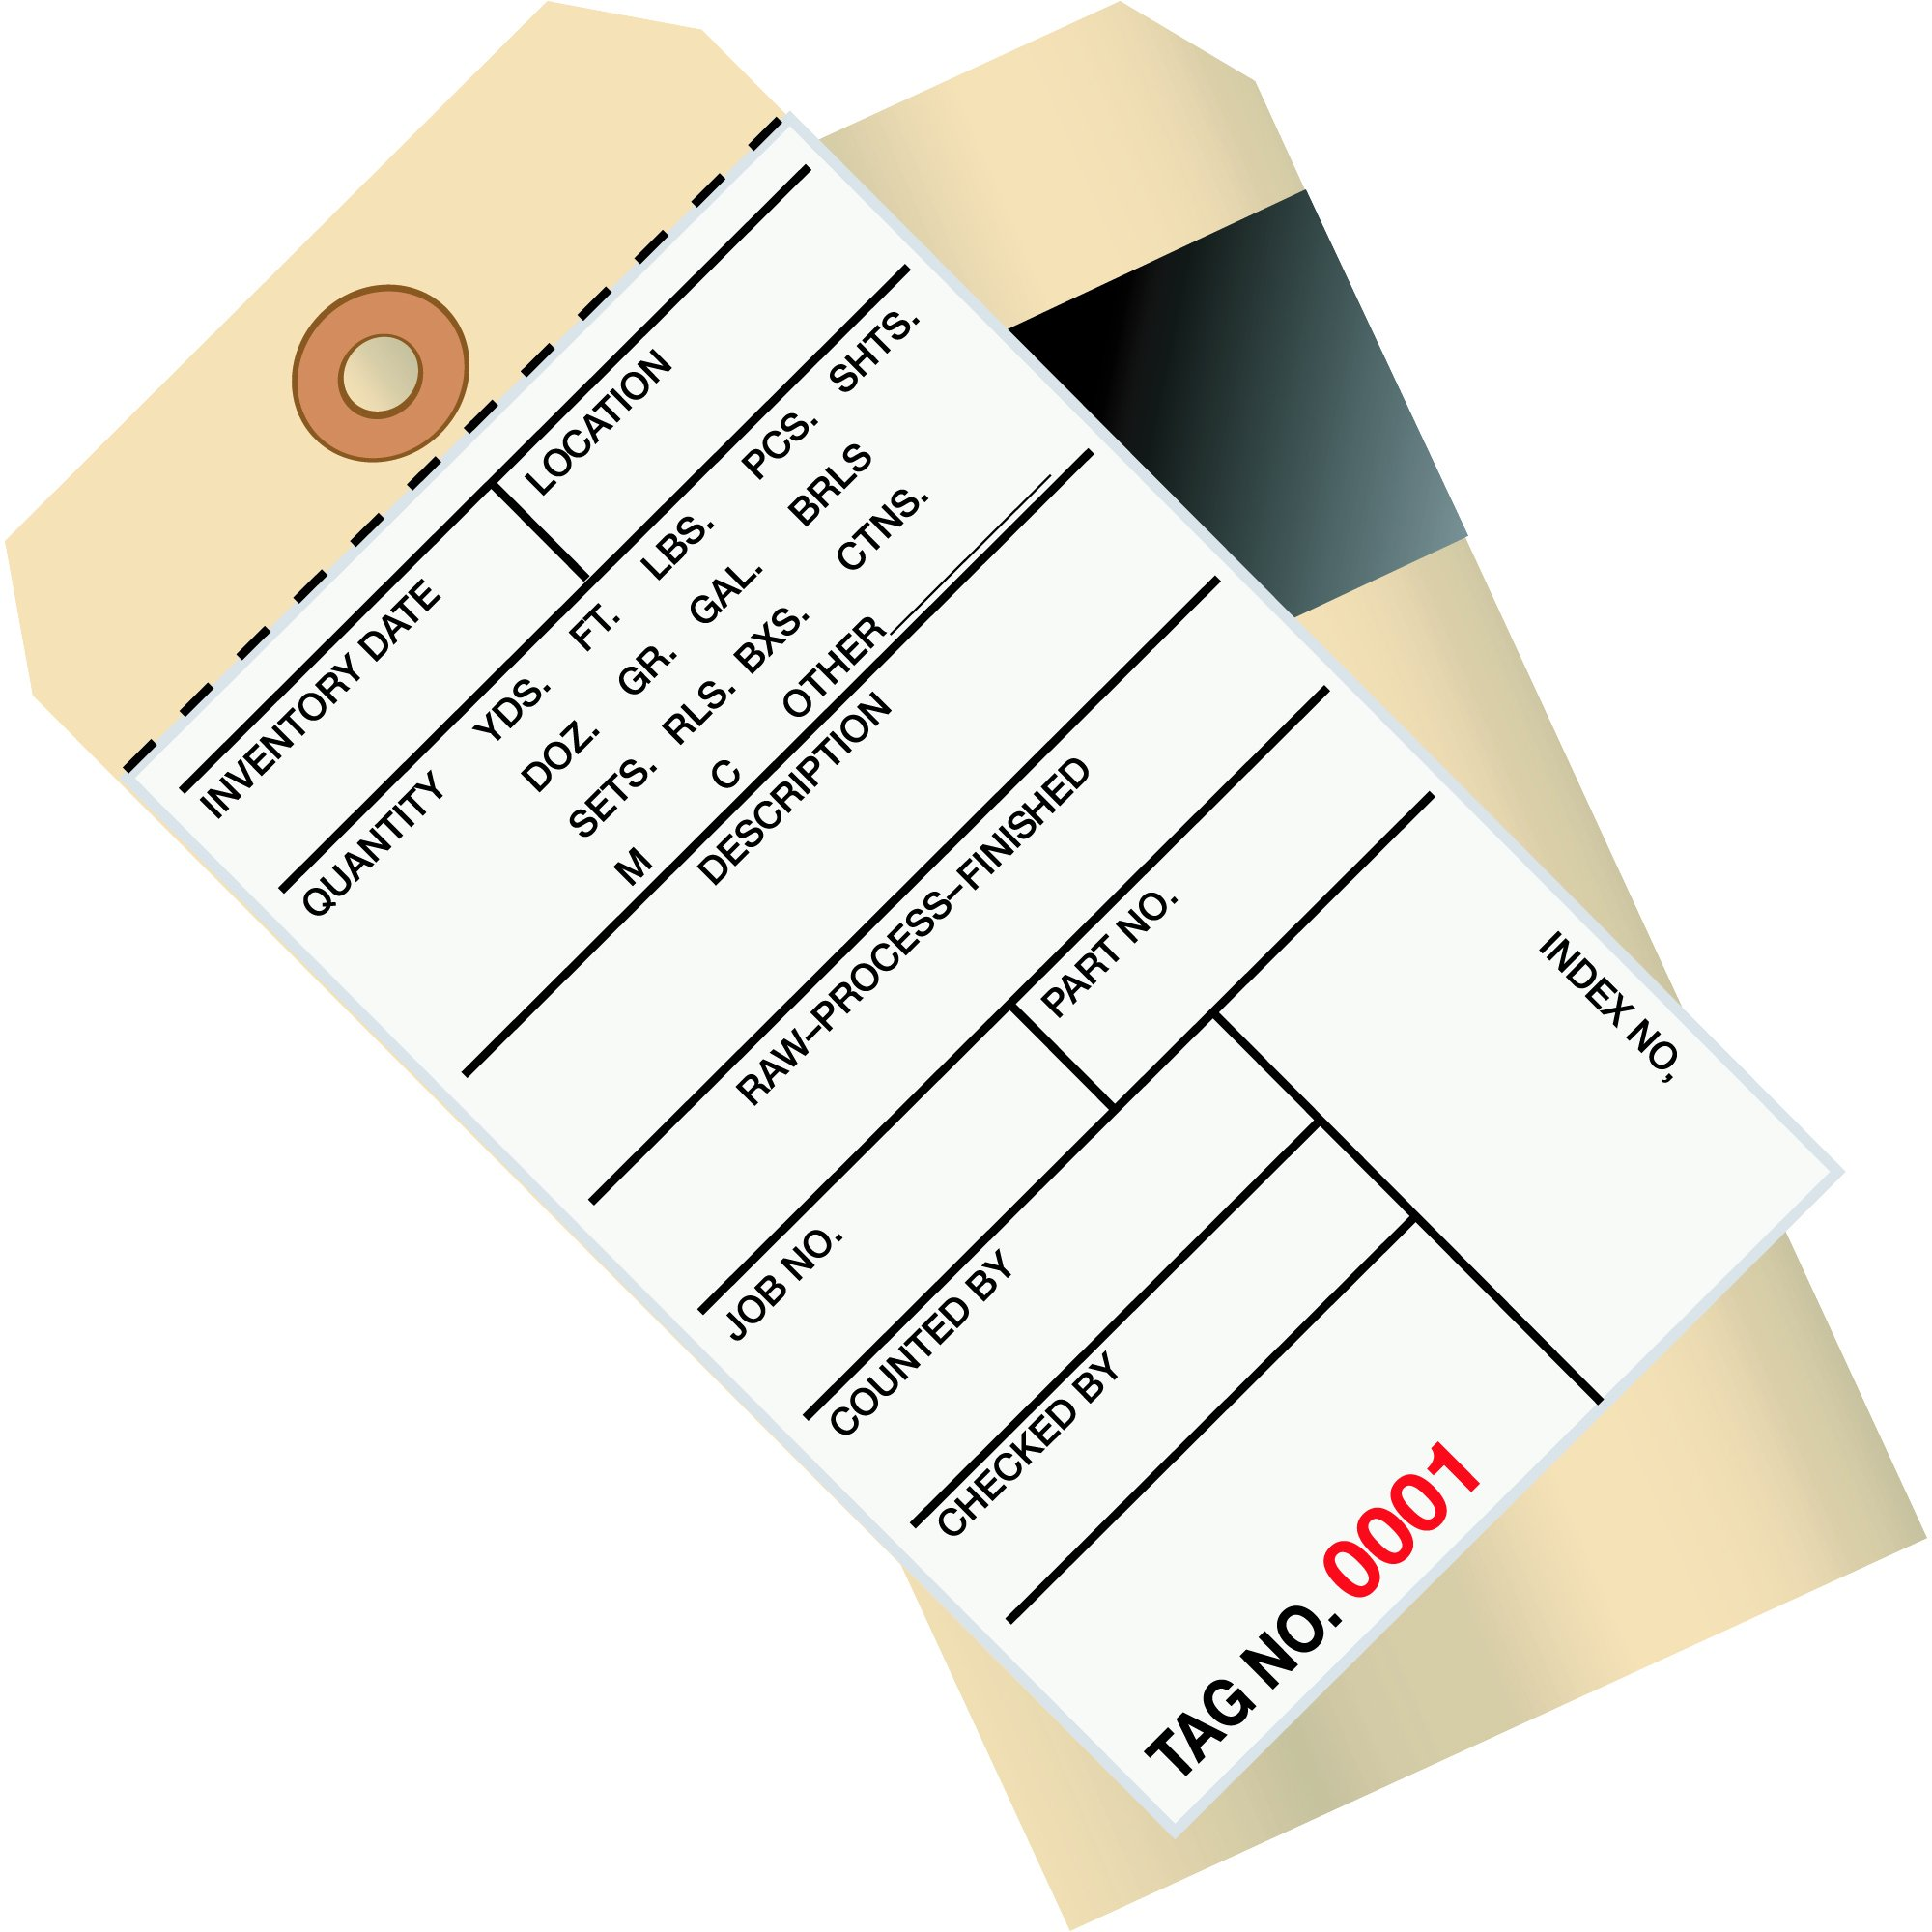 BOX USA BG17031 Inventory Tags, 2 Part Carbon Style #8, (1000-1499), 6 1/4'' x 3 1/8'', Manila (Pack of 500)